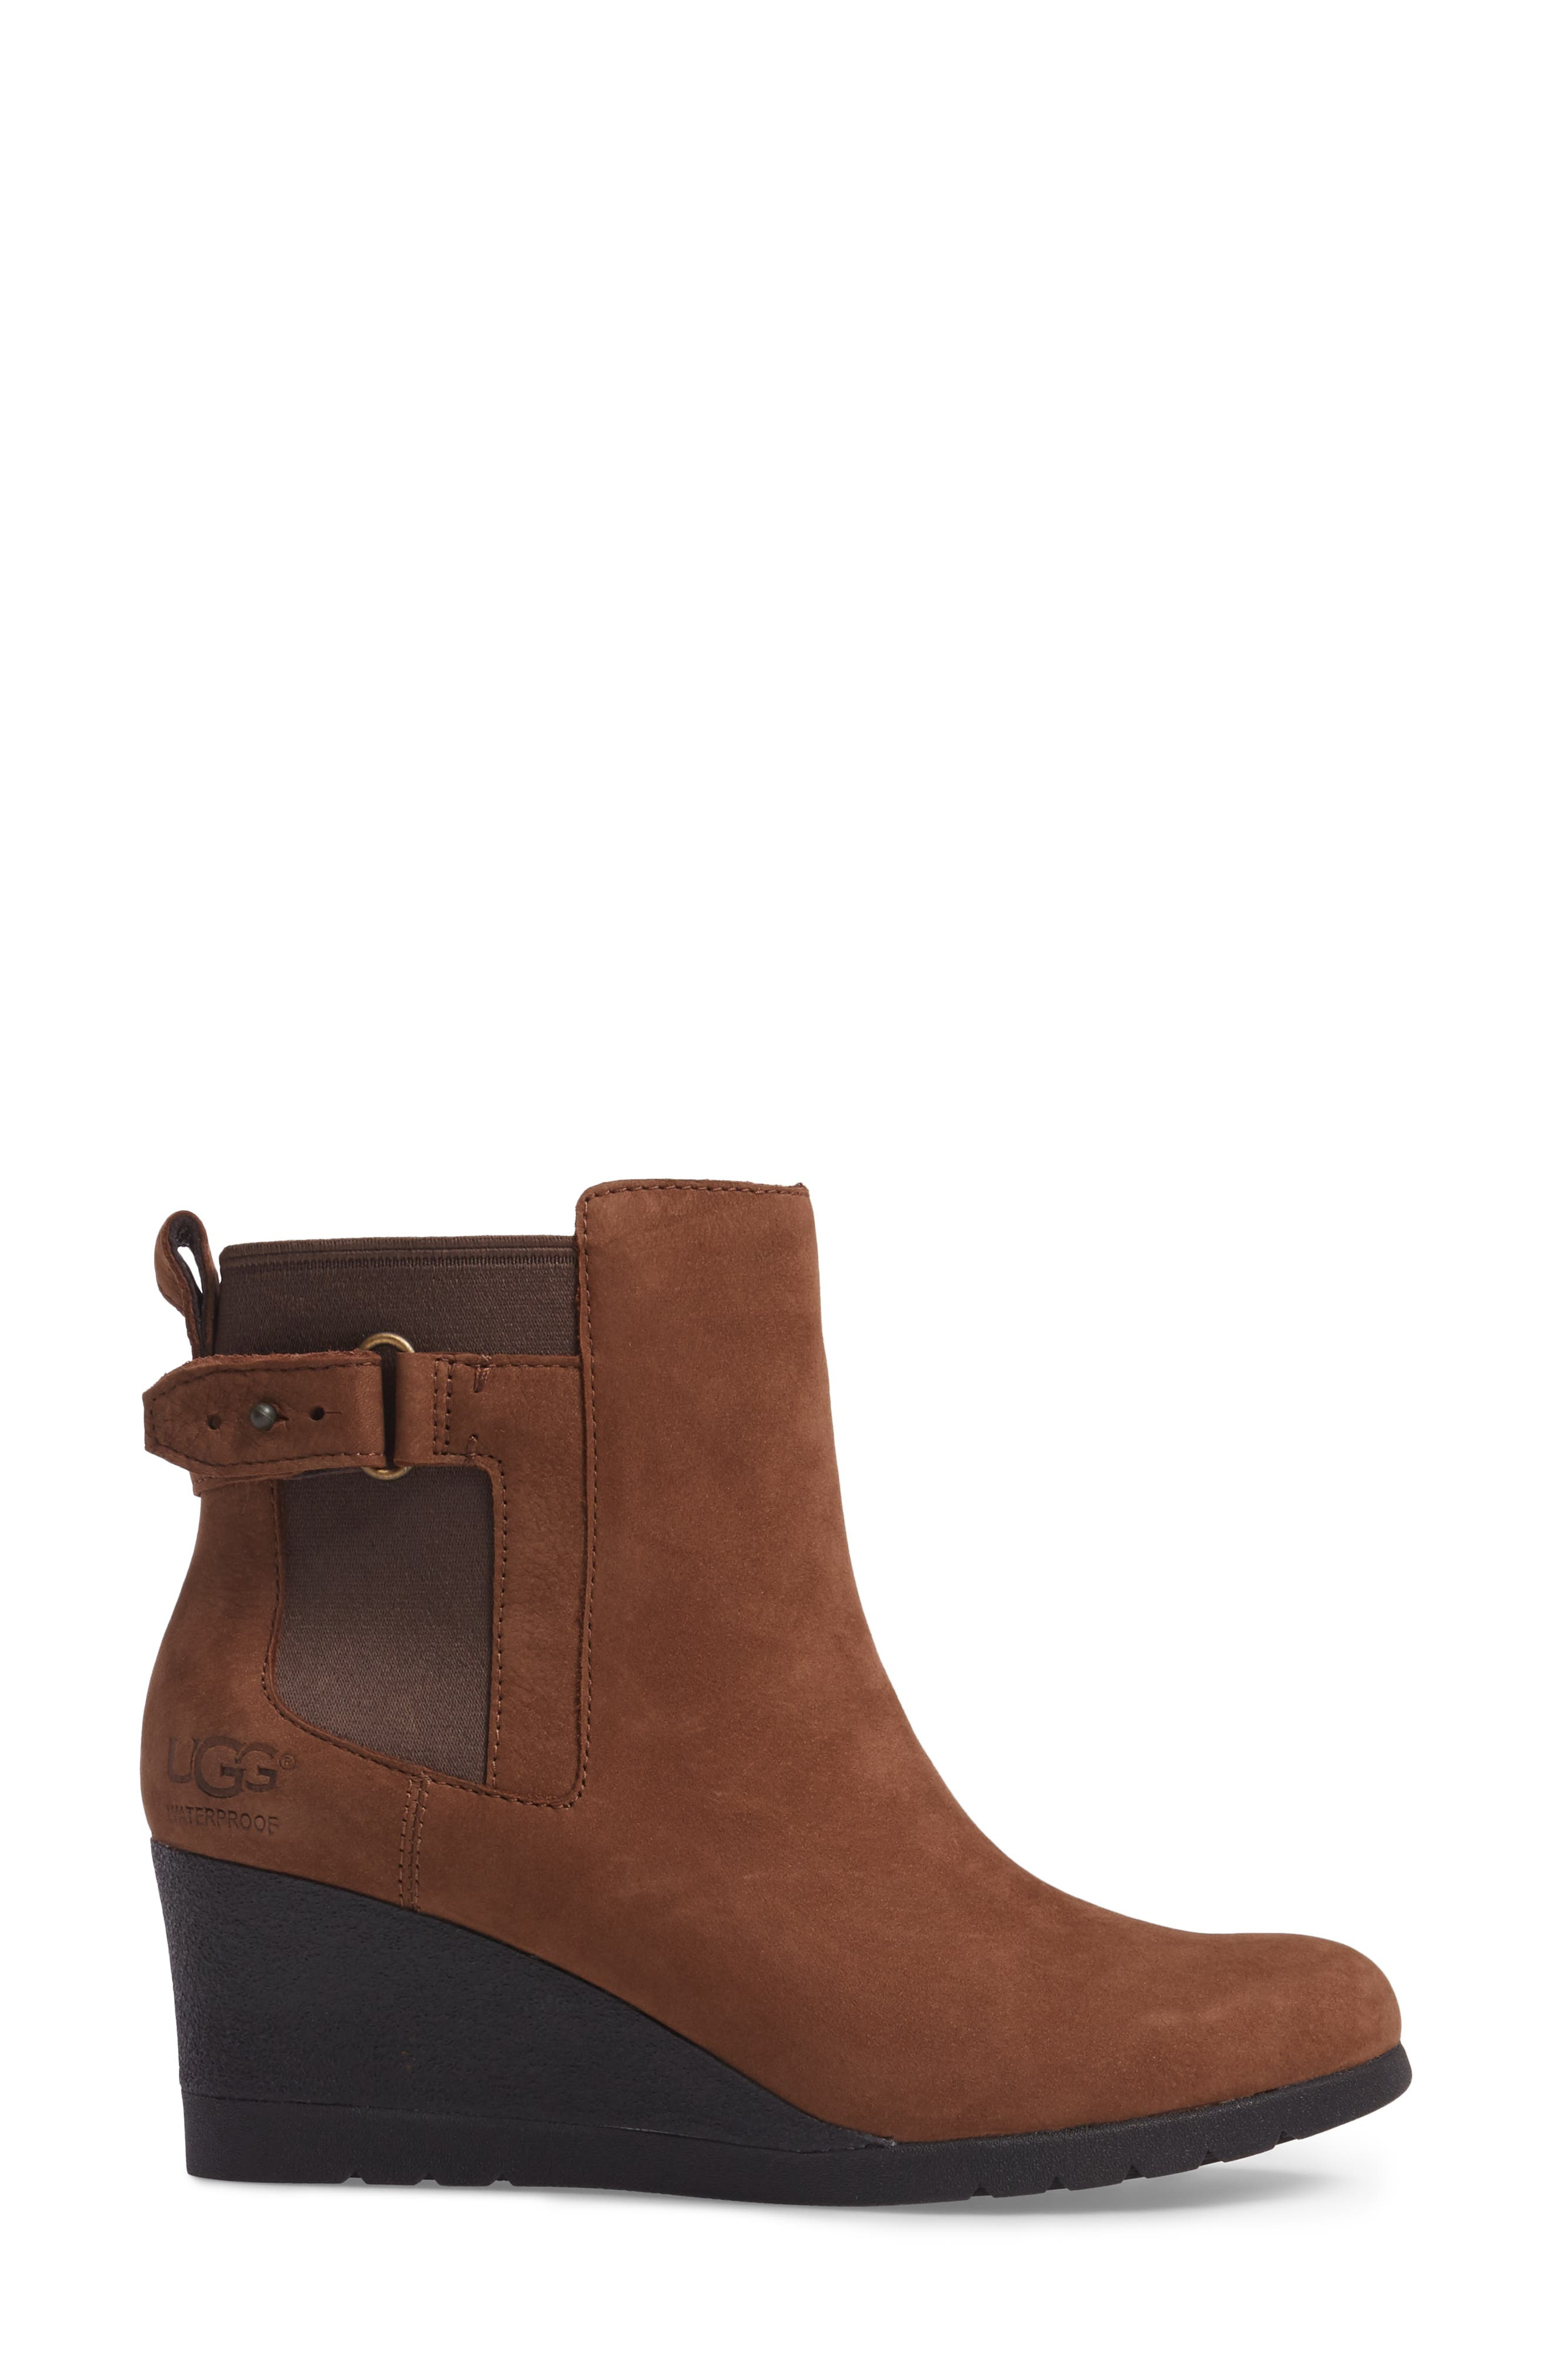 Waterproof Insulated Wedge Boot,                             Alternate thumbnail 3, color,                             STOUT LEATHER